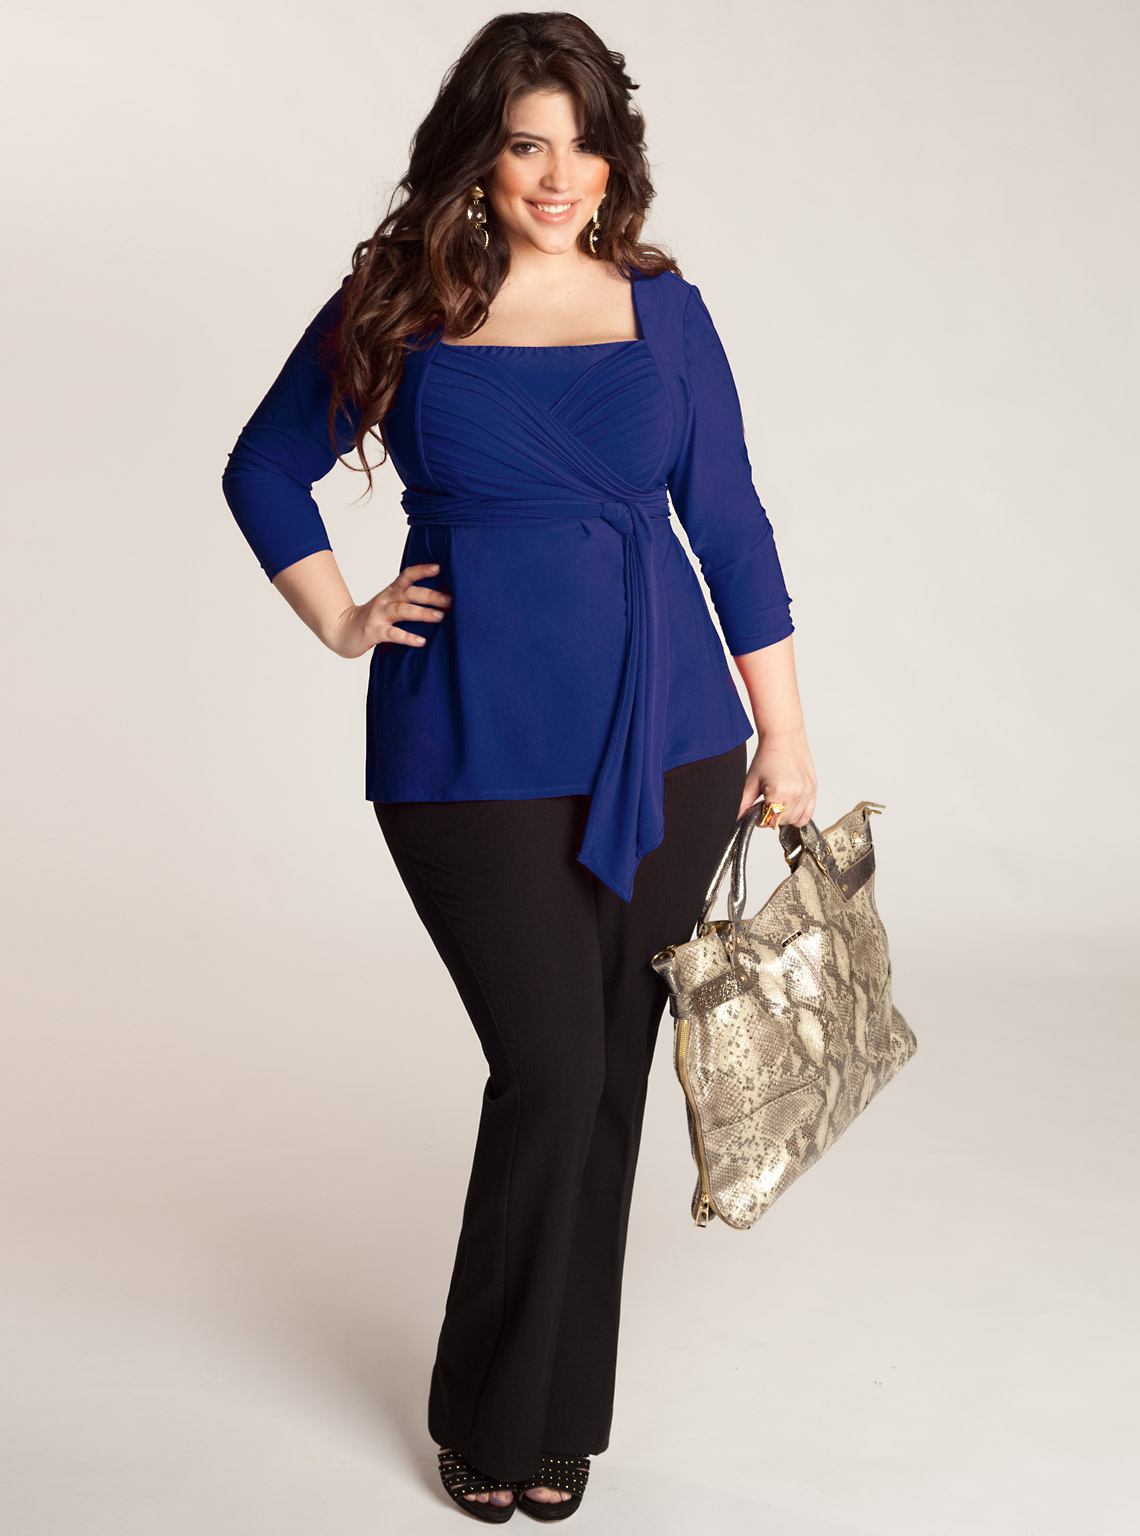 Shop maurices' Wide Selection of Trendy Plus Size Tops. When it comes to fashion finds, our fancy plus size tops should be your first stop. From cozy plus size cardigans and comfy plus size sweaters to top rated plus size graphic tees and plus size pretty peasant tops, our tops come in a variety of colors, styles, sizes à perfect for outfitting casual weekends, morning work meetings and.